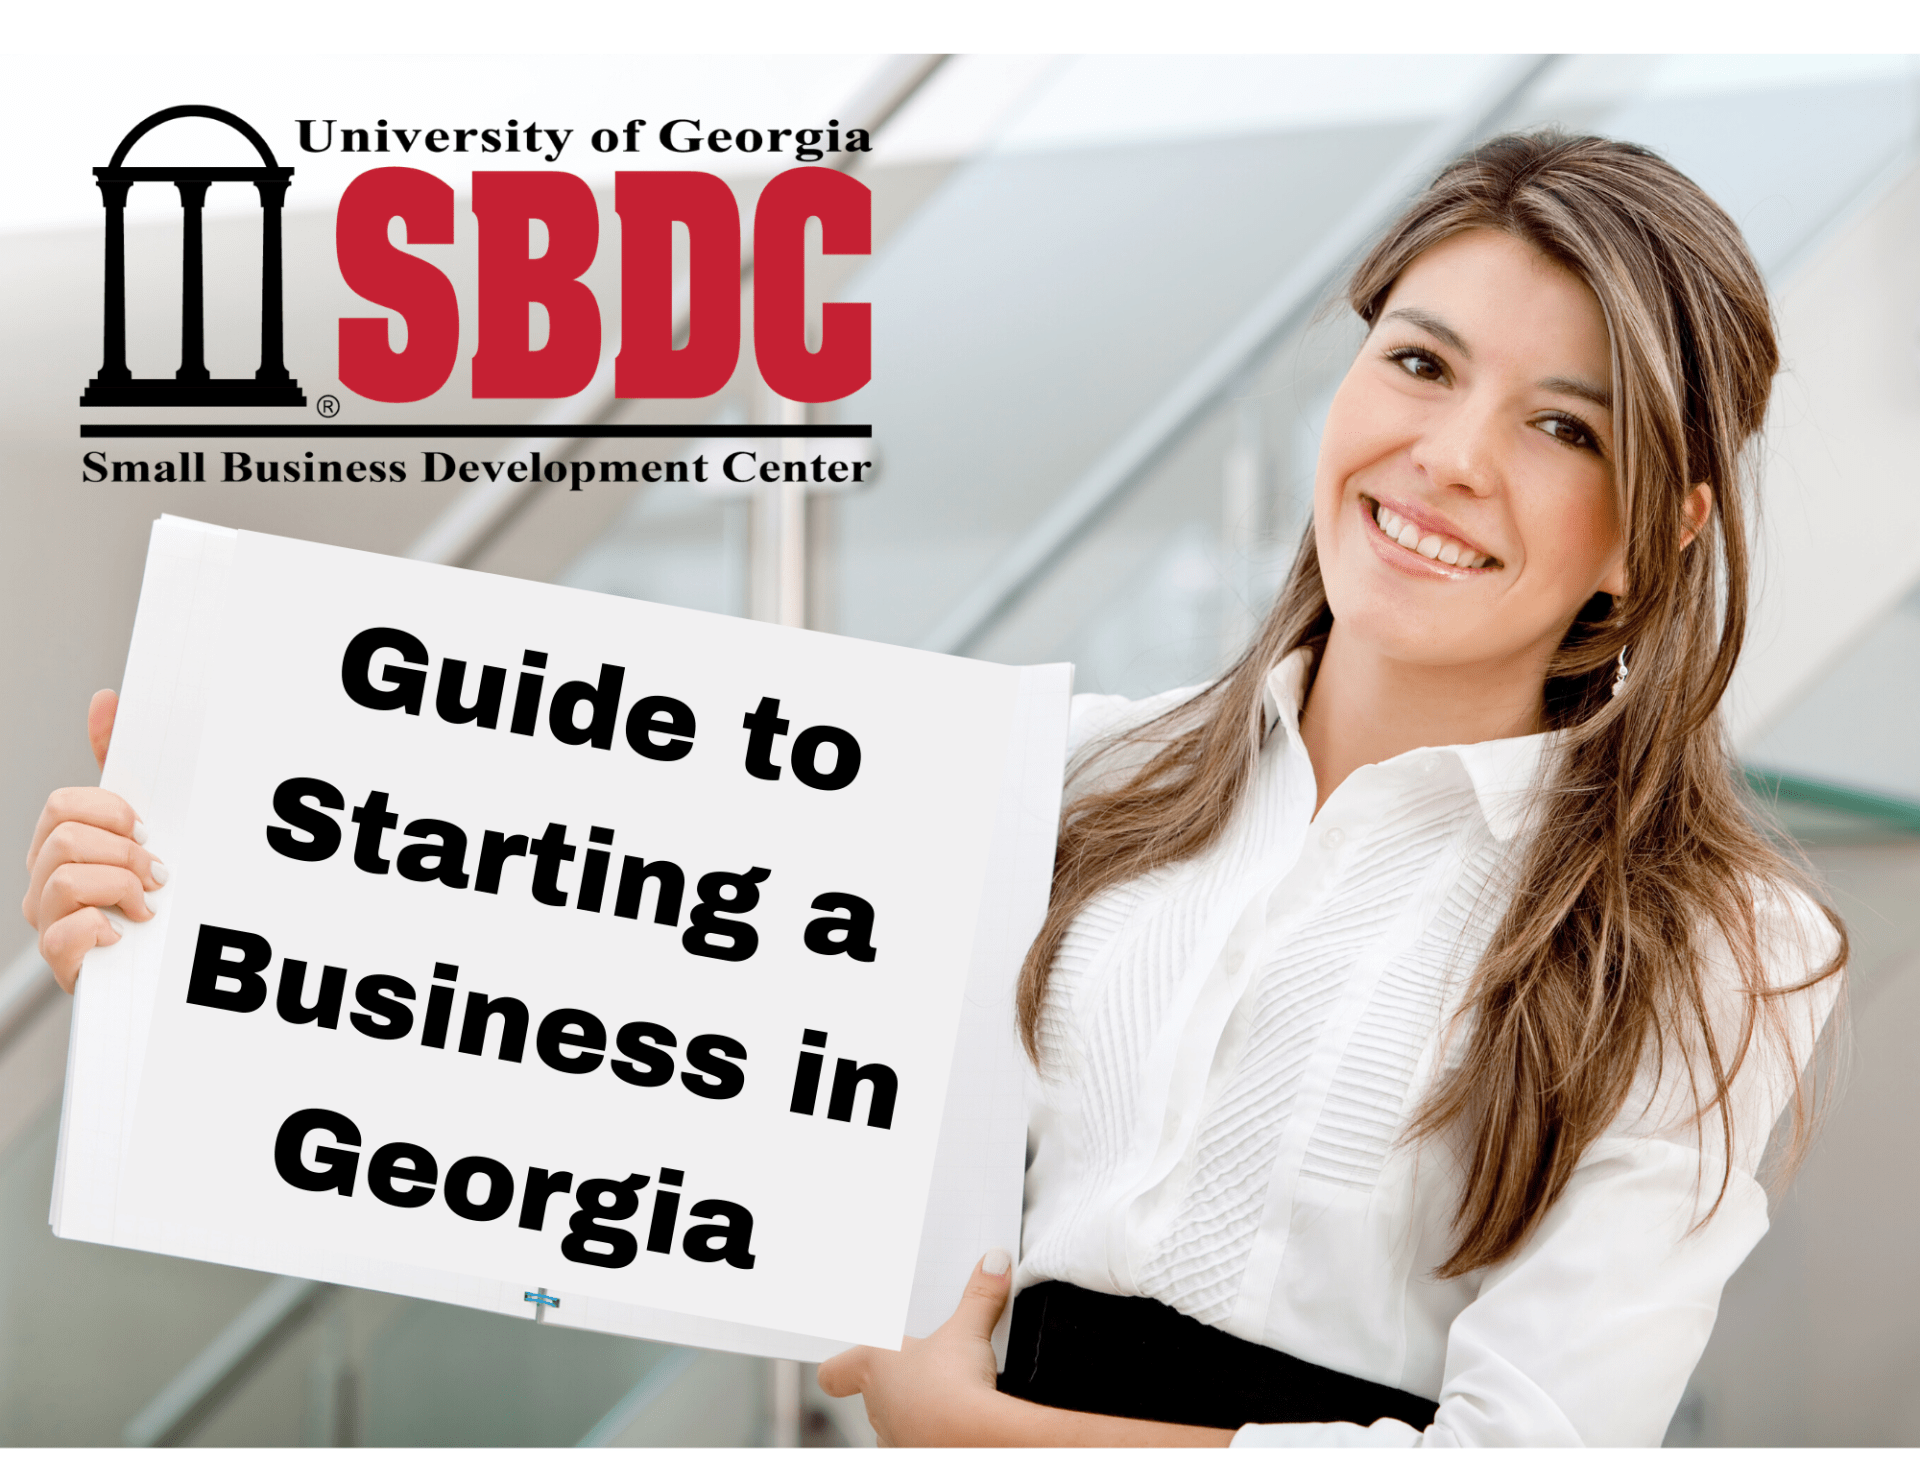 Guide-to-Starting-a-Business-in-Georgia-graphic-w1920.png